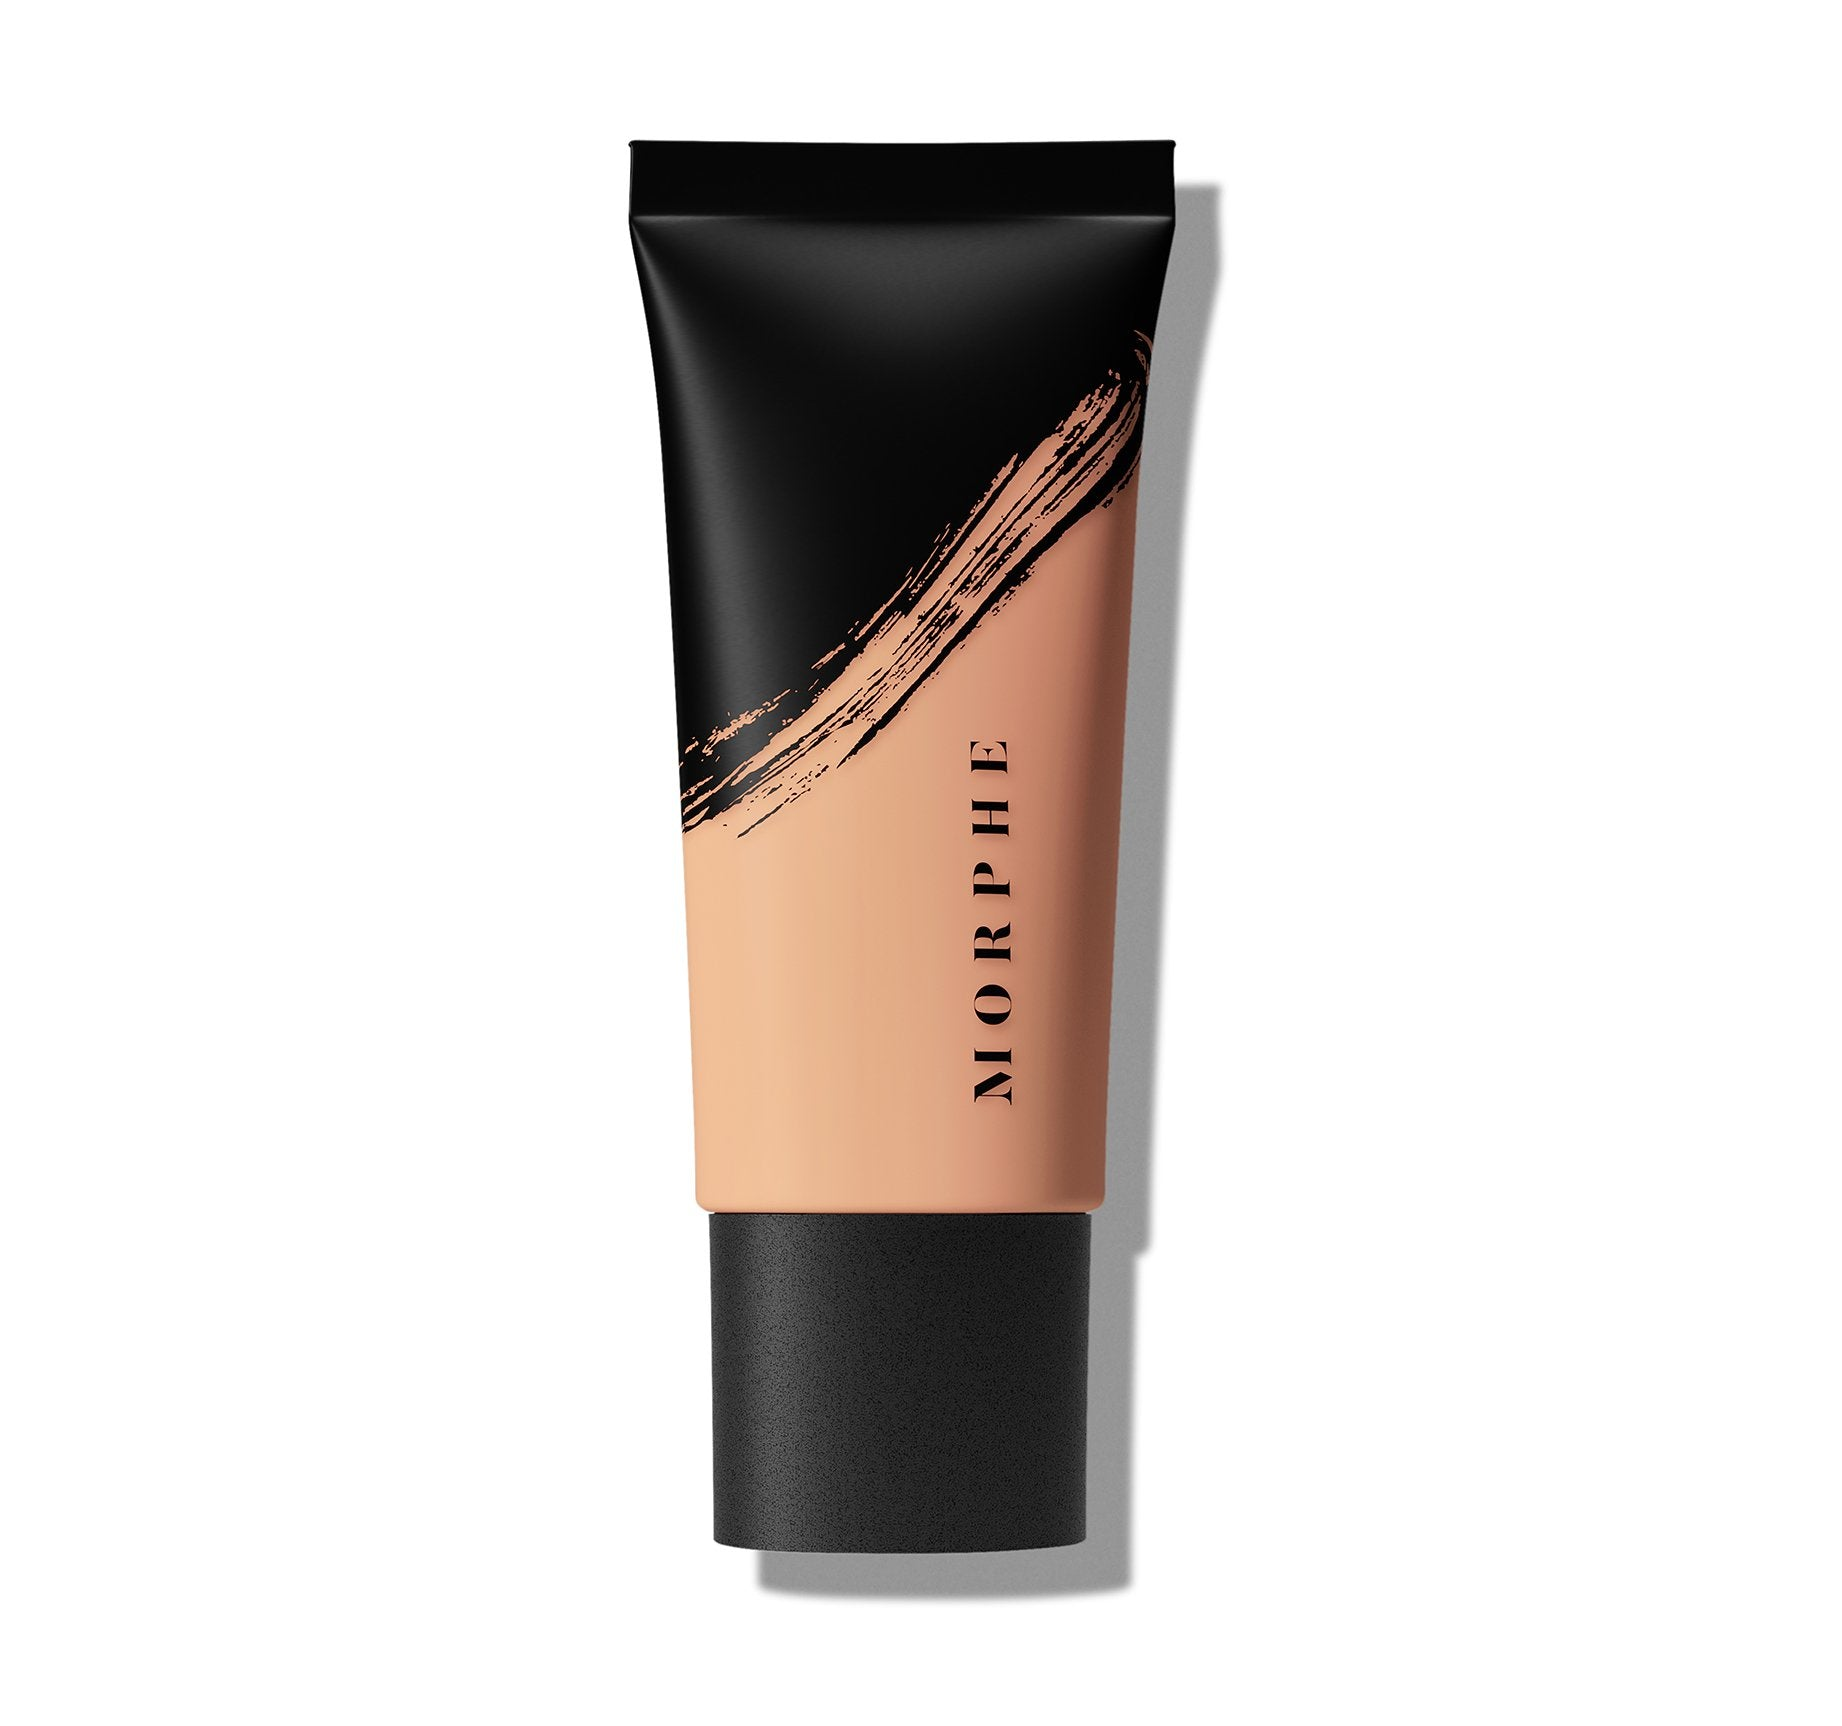 FLUIDITY FULL-COVERAGE FOUNDATION - F1.110, view larger image